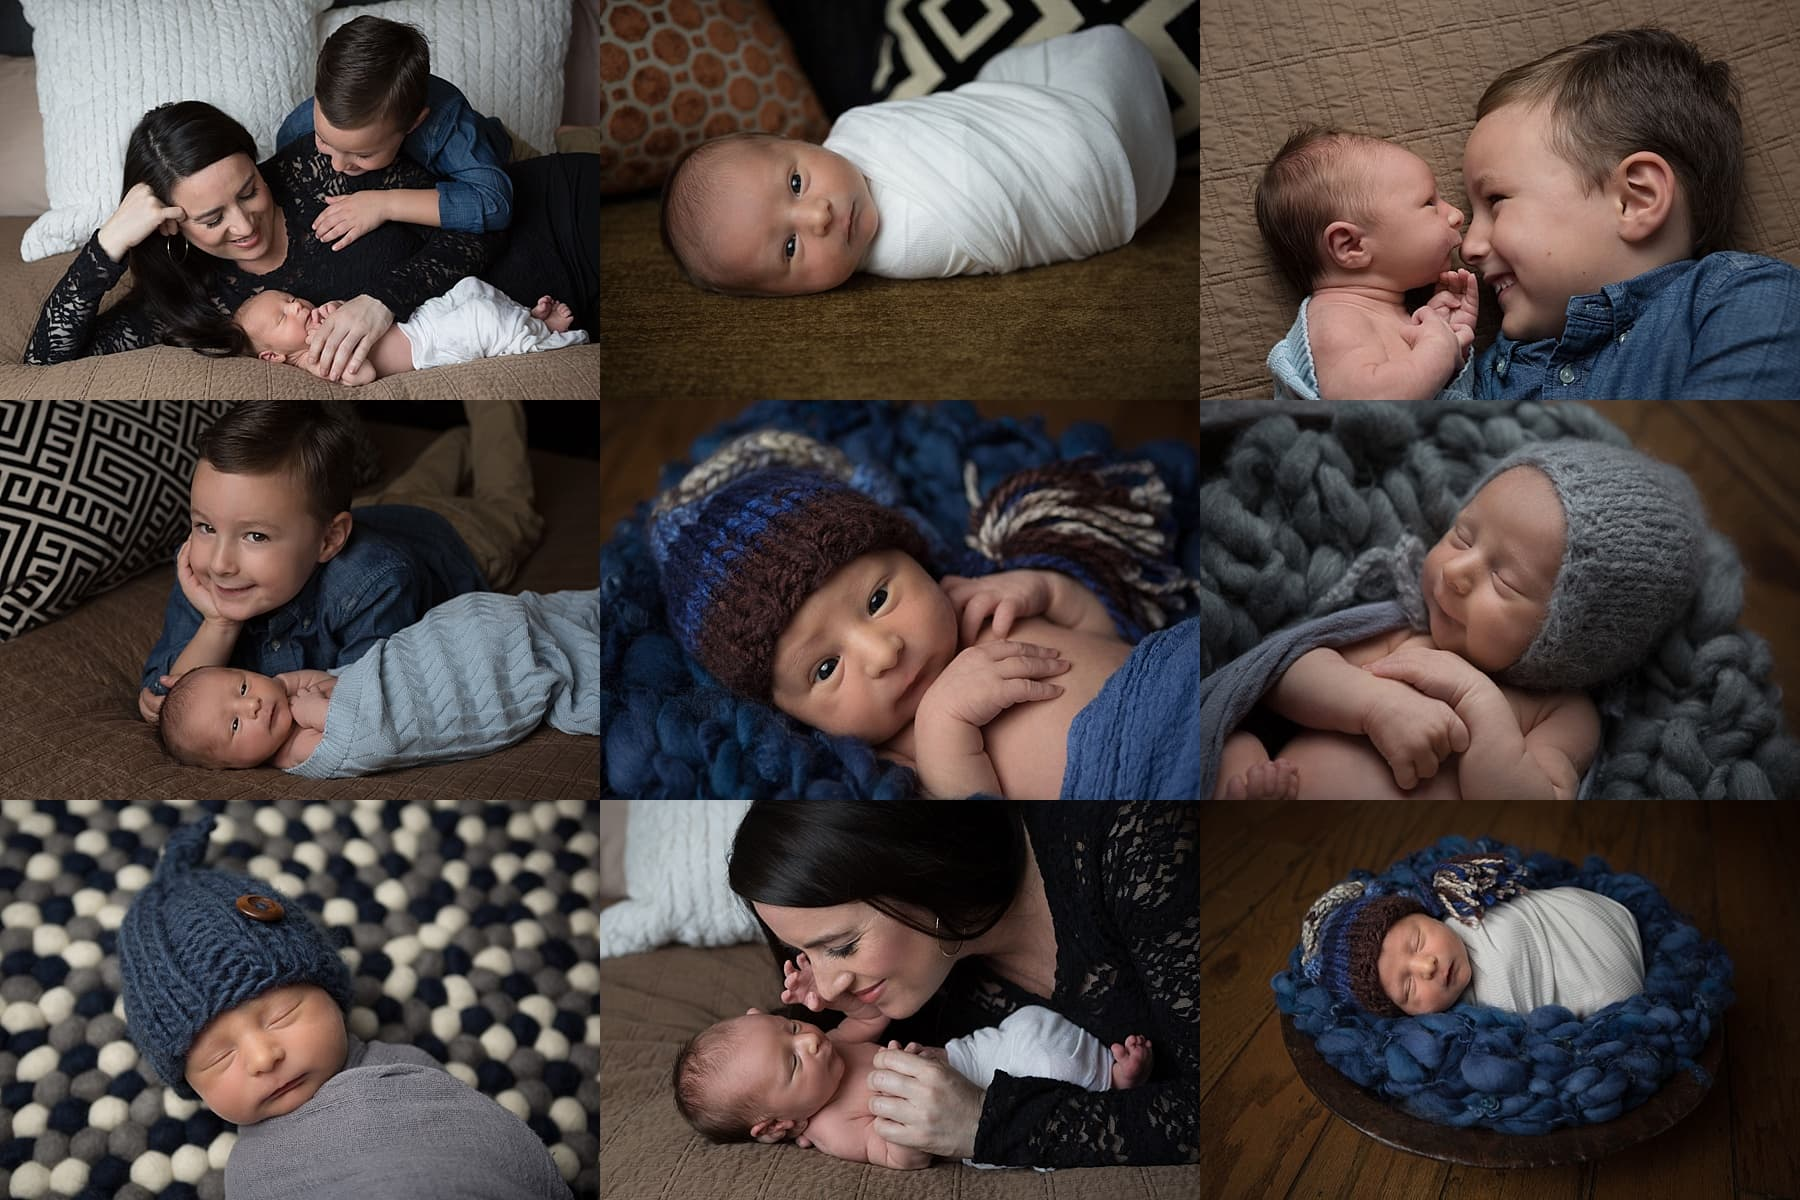 newborn photo session in San Antonio, Texas